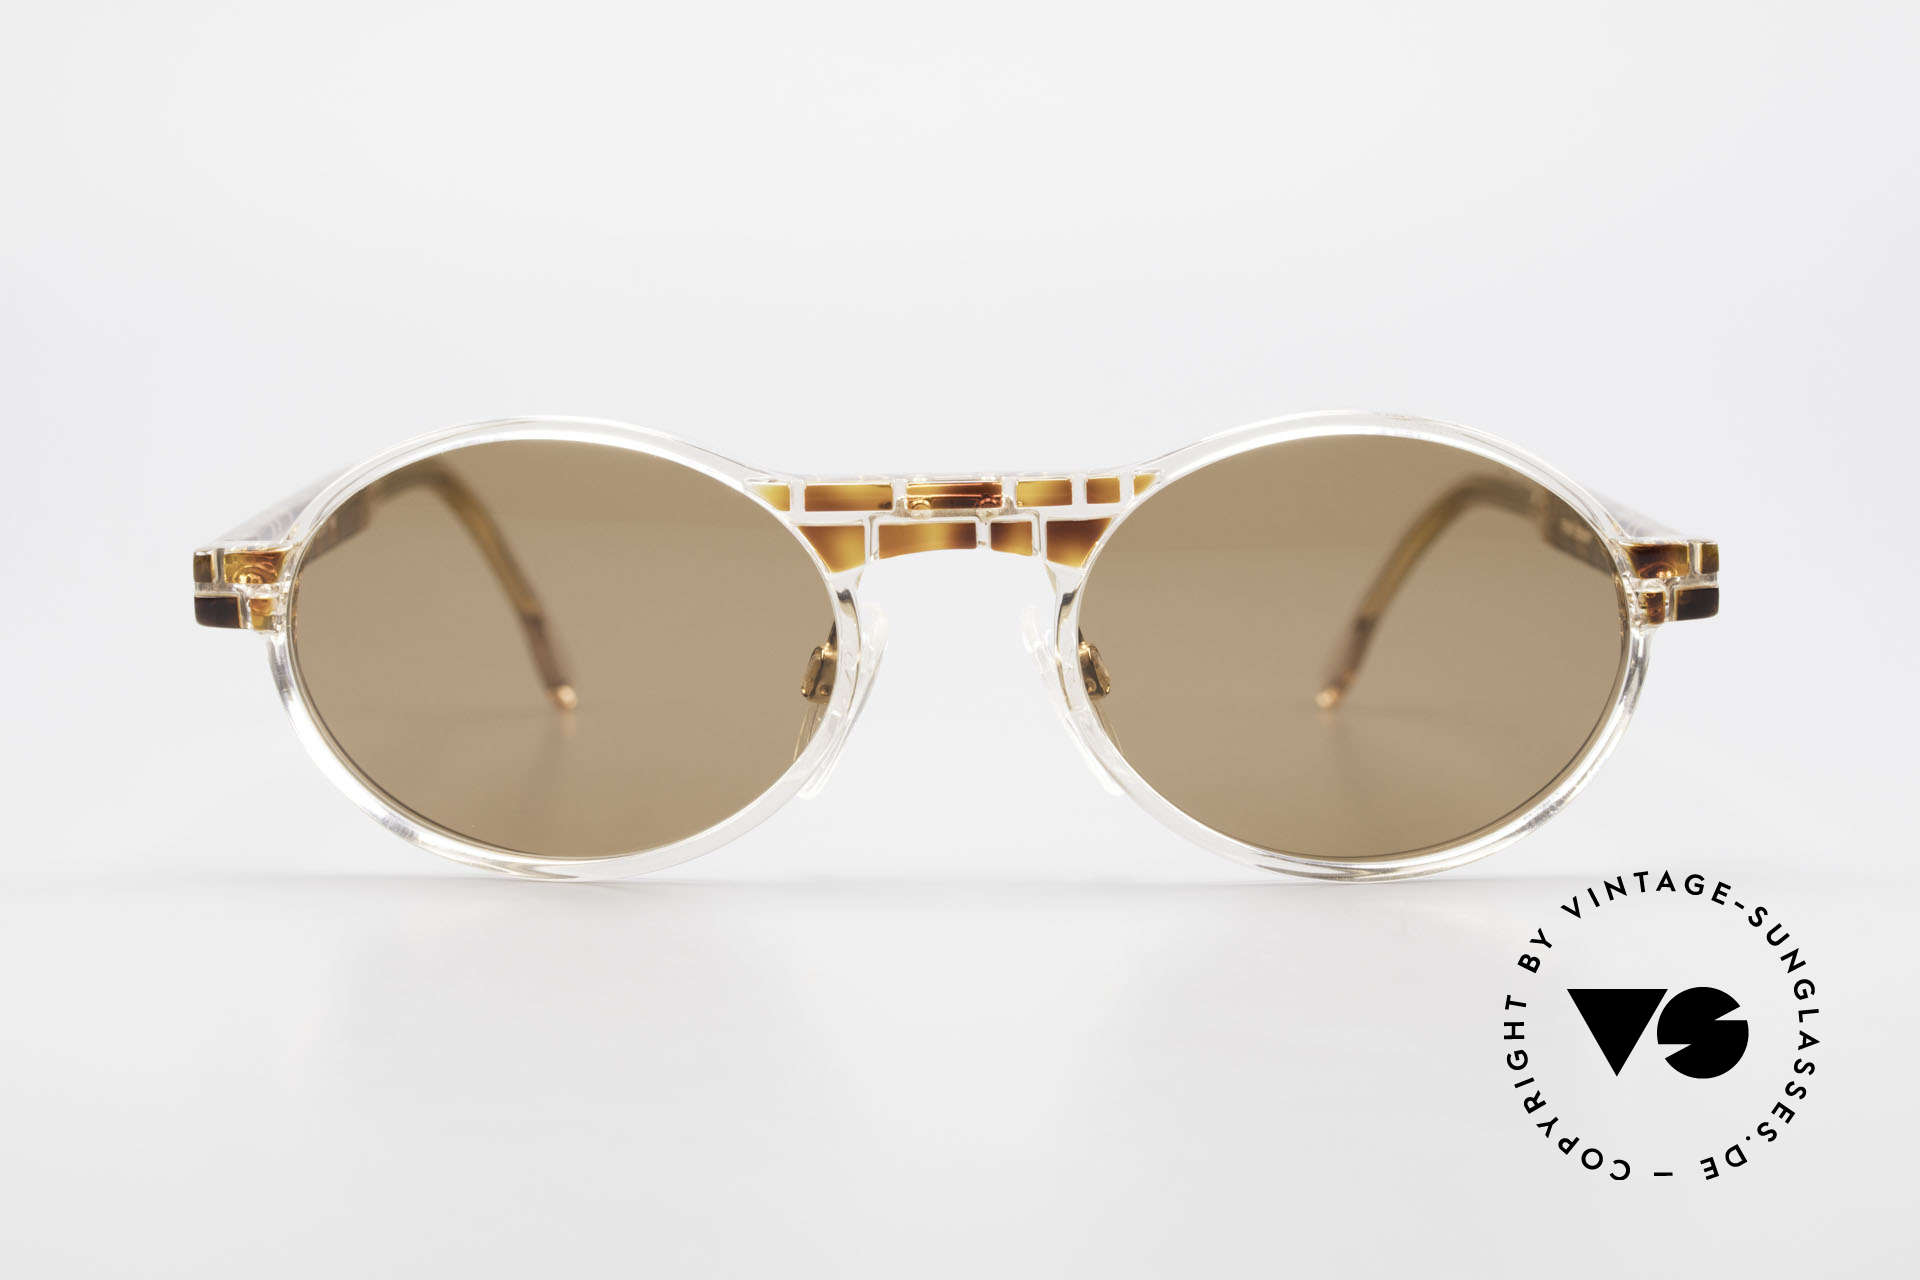 Cazal 510 Limited Oval Vintage Cazal, made in the 90's as limited-lot production in Germany, Made for Men and Women